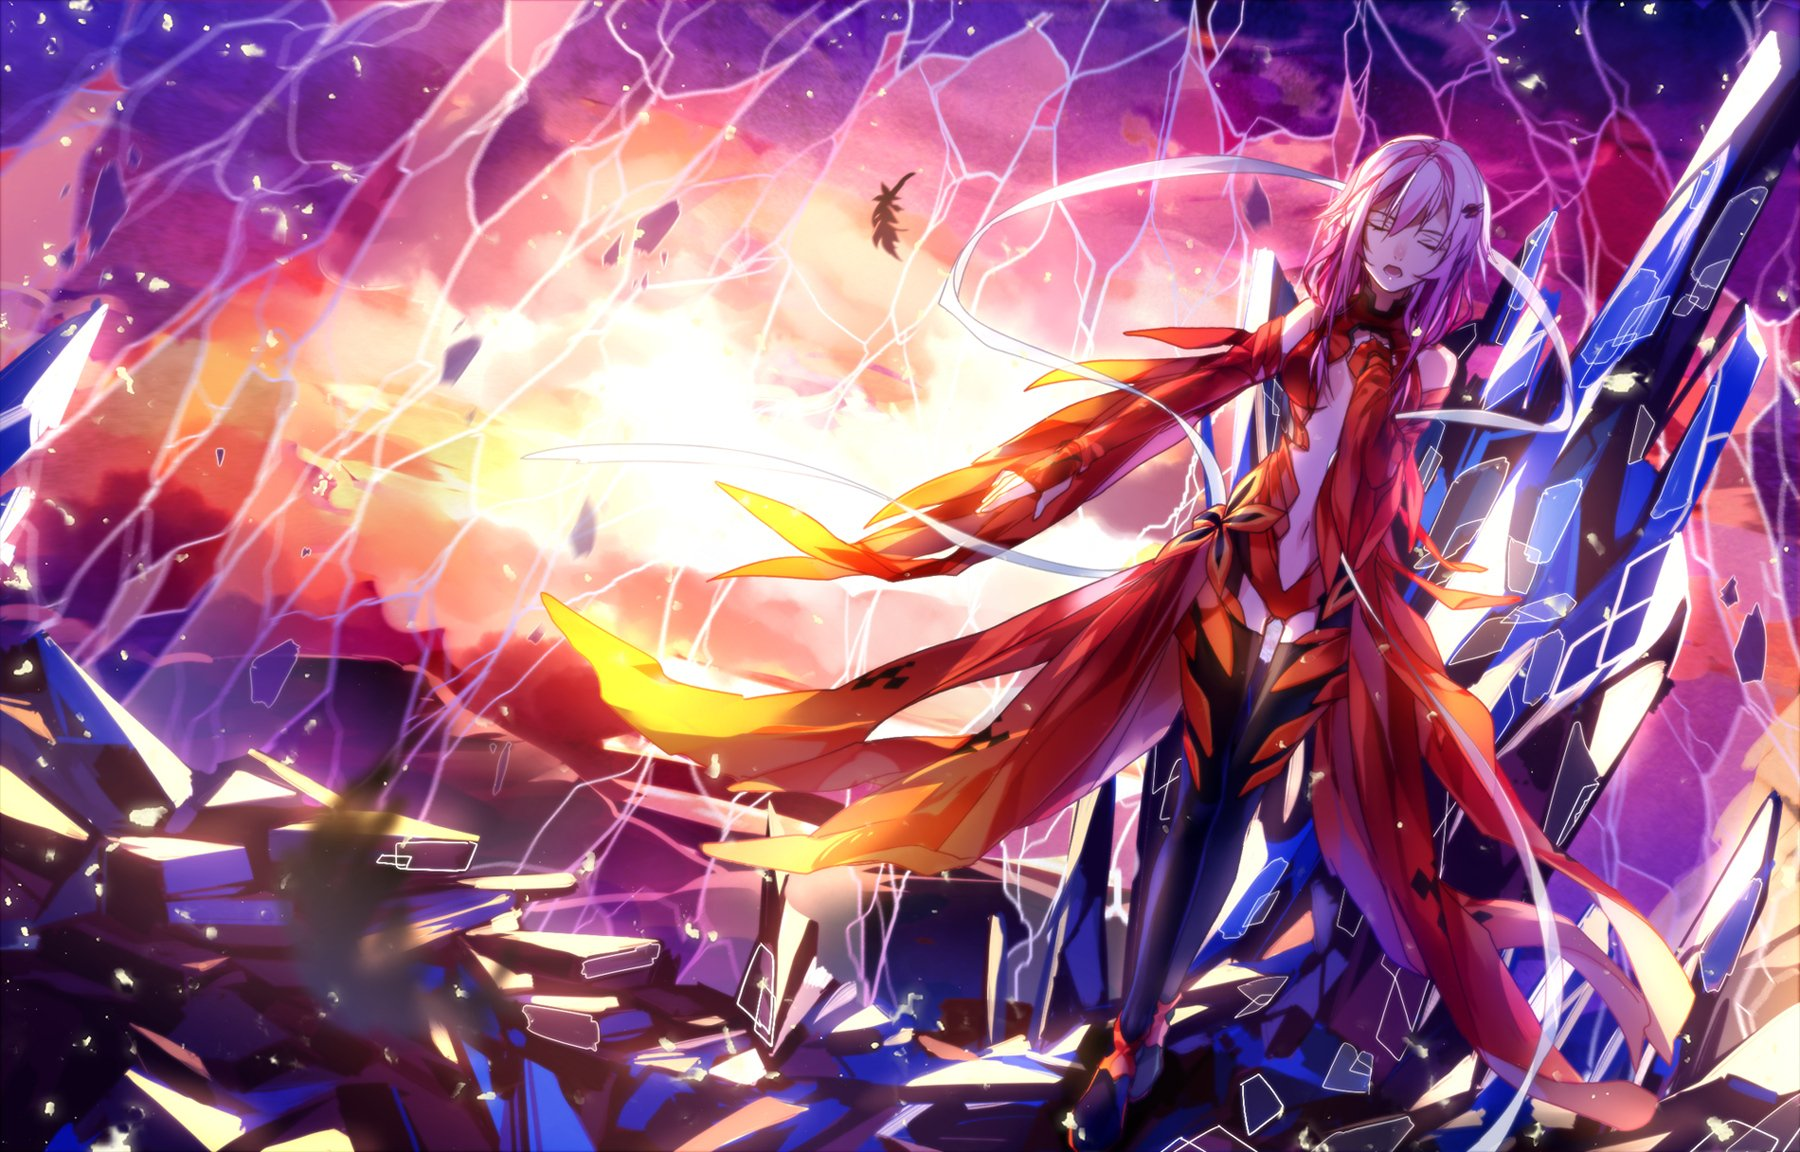 Guilty Crown Wallpaper Inori: Hyperdestructive Wallpaper And Background Image